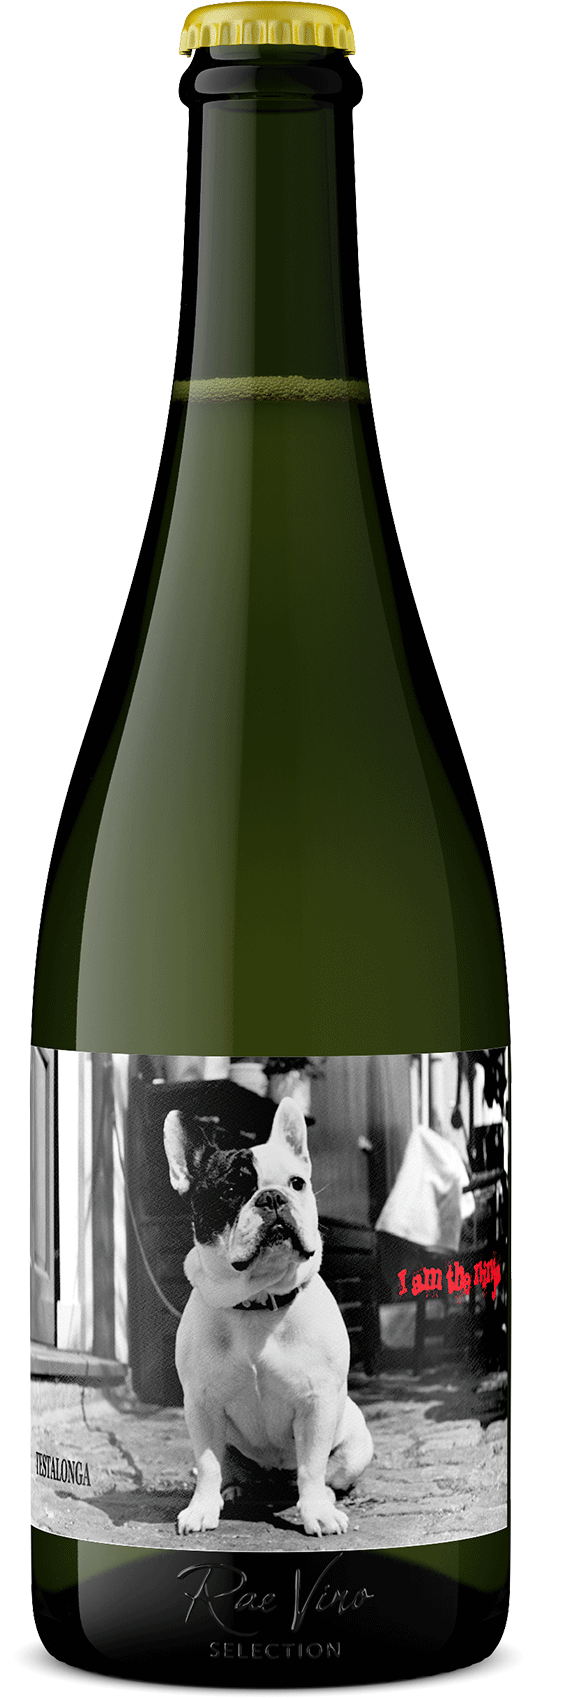 Testalonga : 'I Am The Ninja' : (Sparkling) Chenin Blanc | 2019